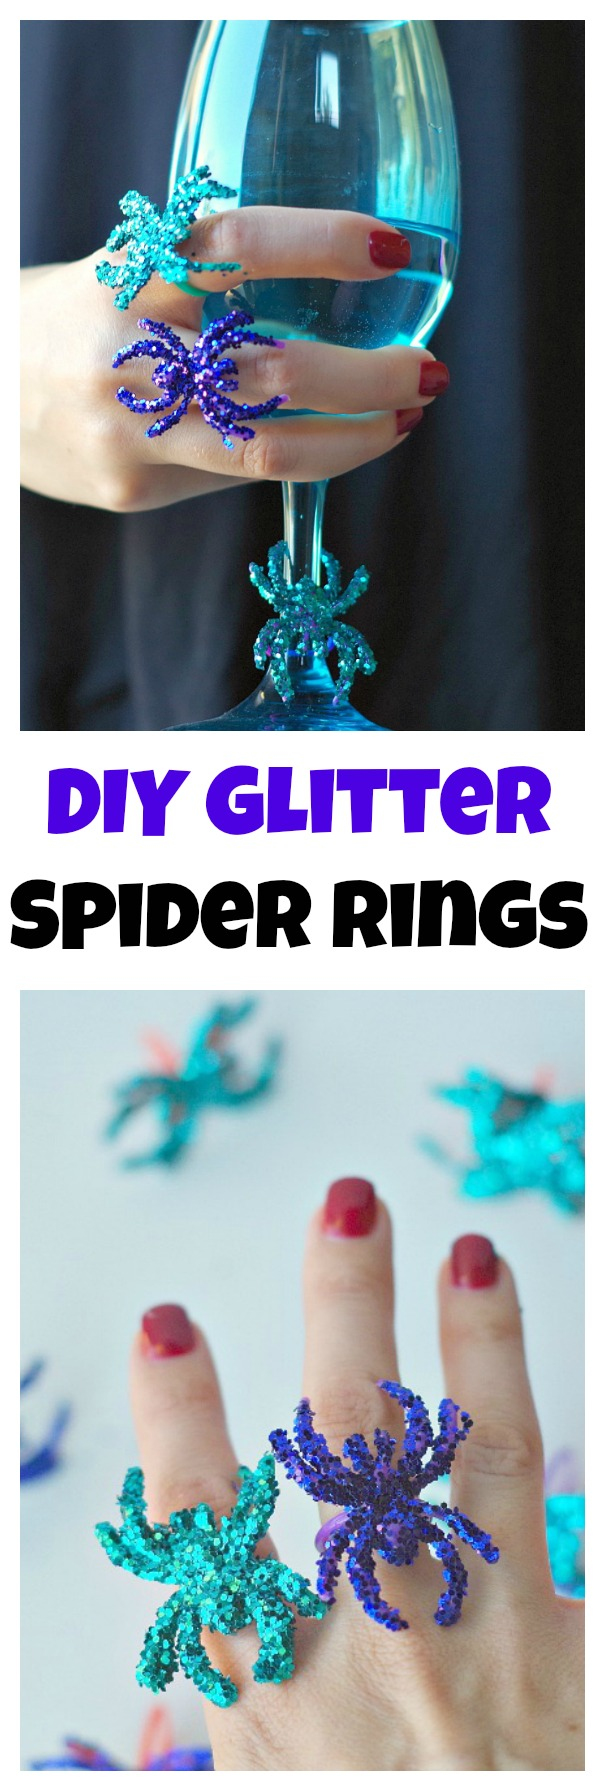 DIY Glitter Spider Rings for Halloween